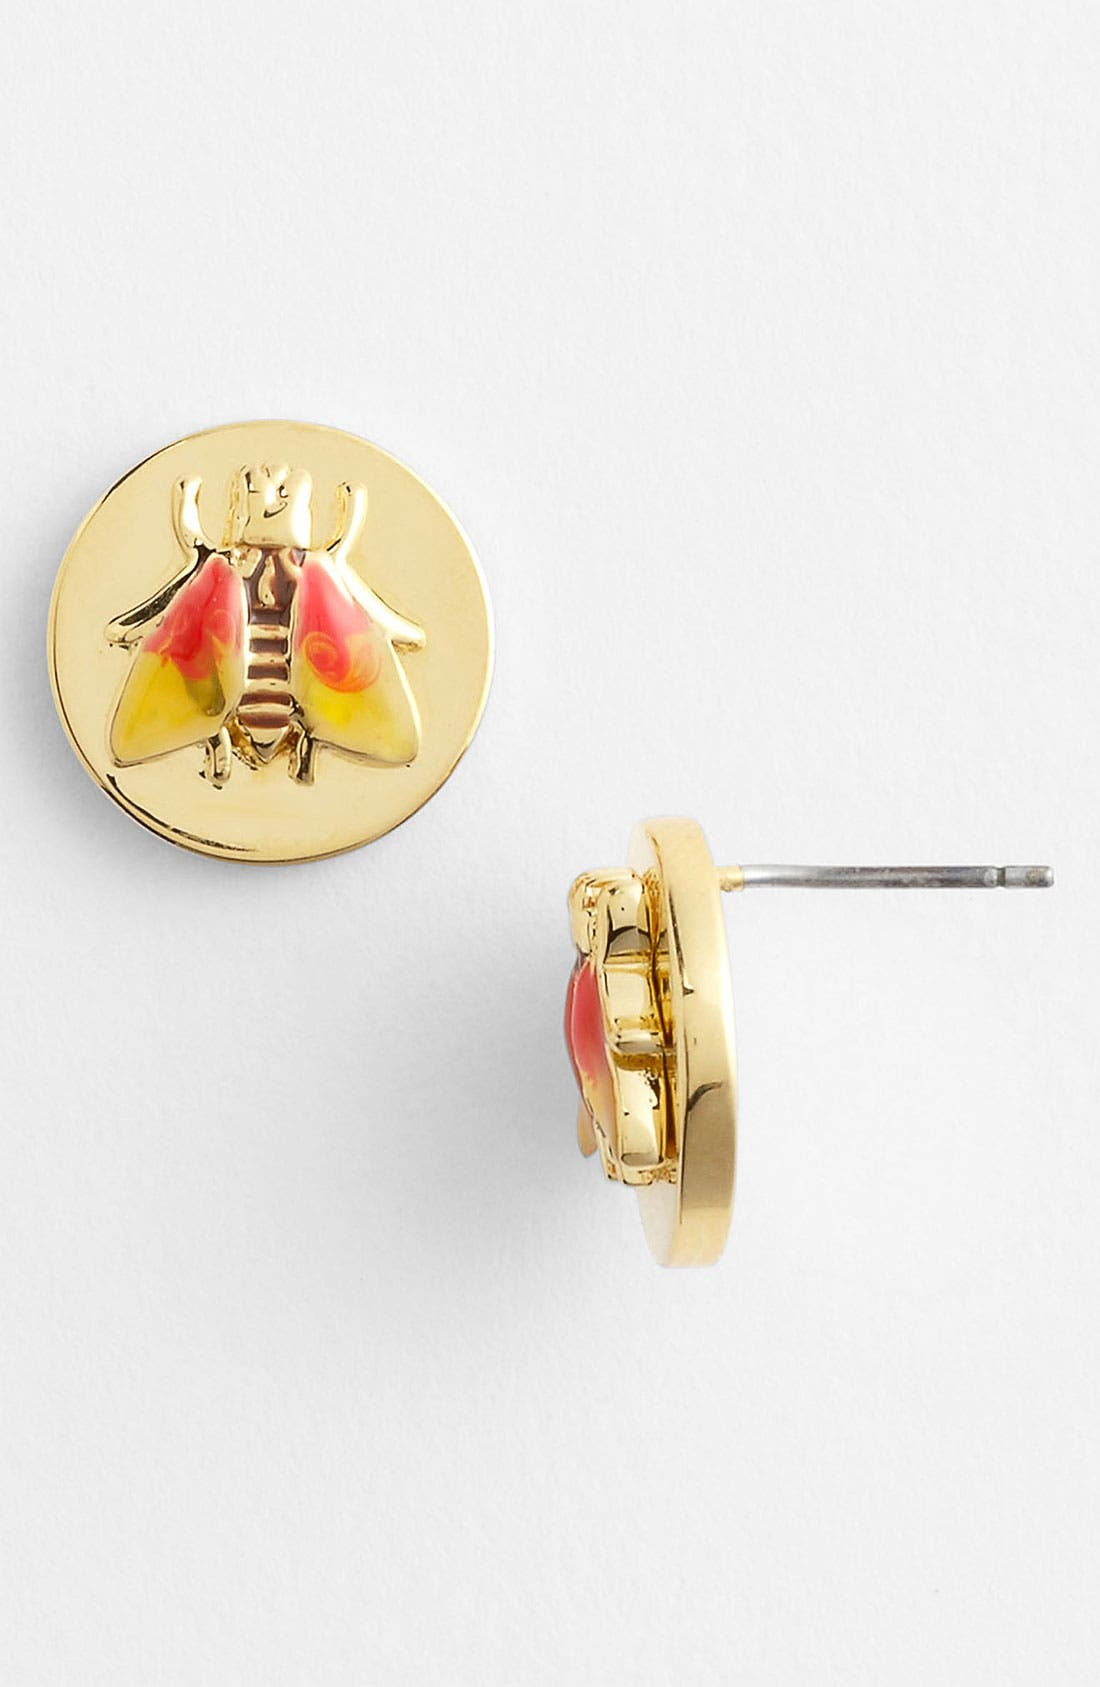 Alternate Image 1 Selected - Tory Burch 'Buddy' Stud Earrings